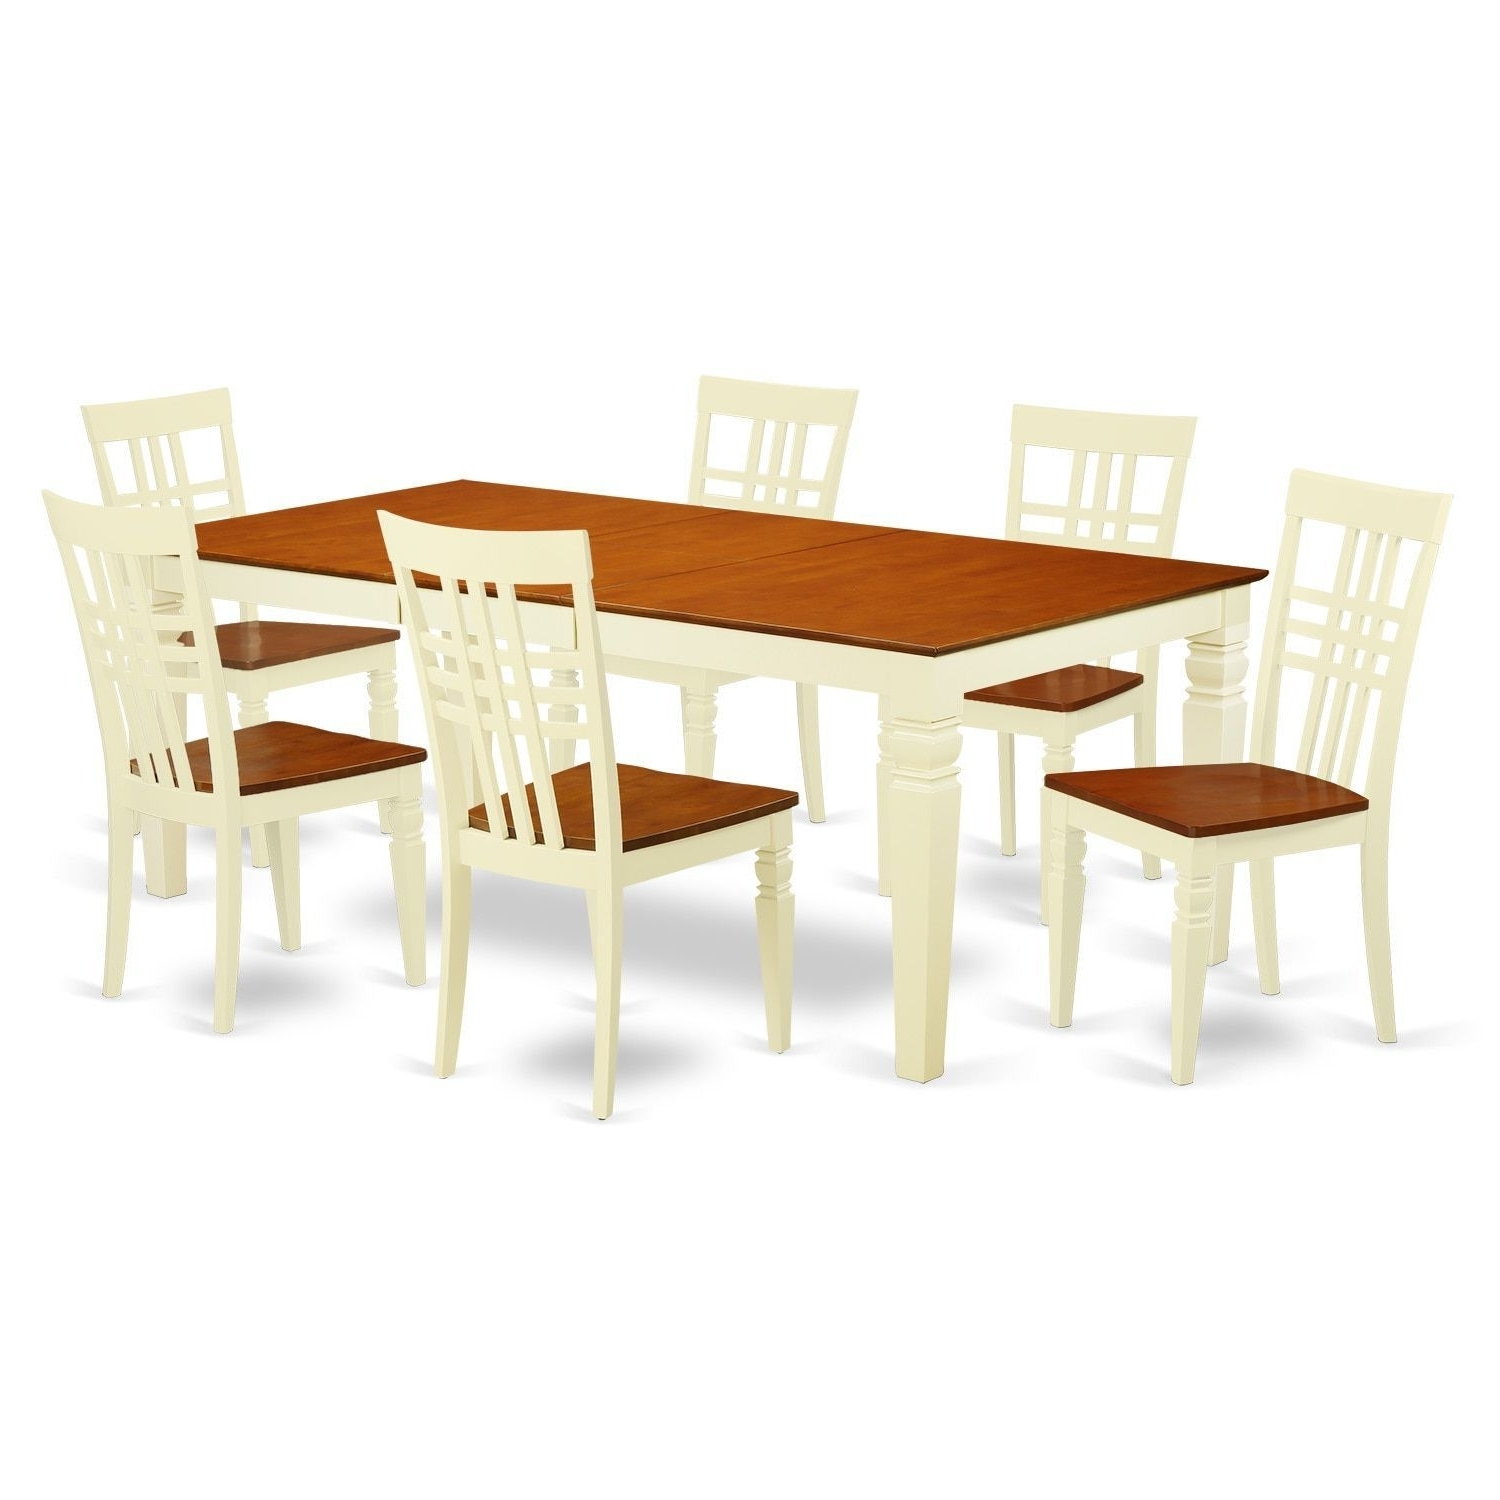 Logan 7 Piece Dining Sets Within 2017 Logan Wood Extendable Dining Table And 6 Chairs Set (Buttermilk (View 5 of 25)